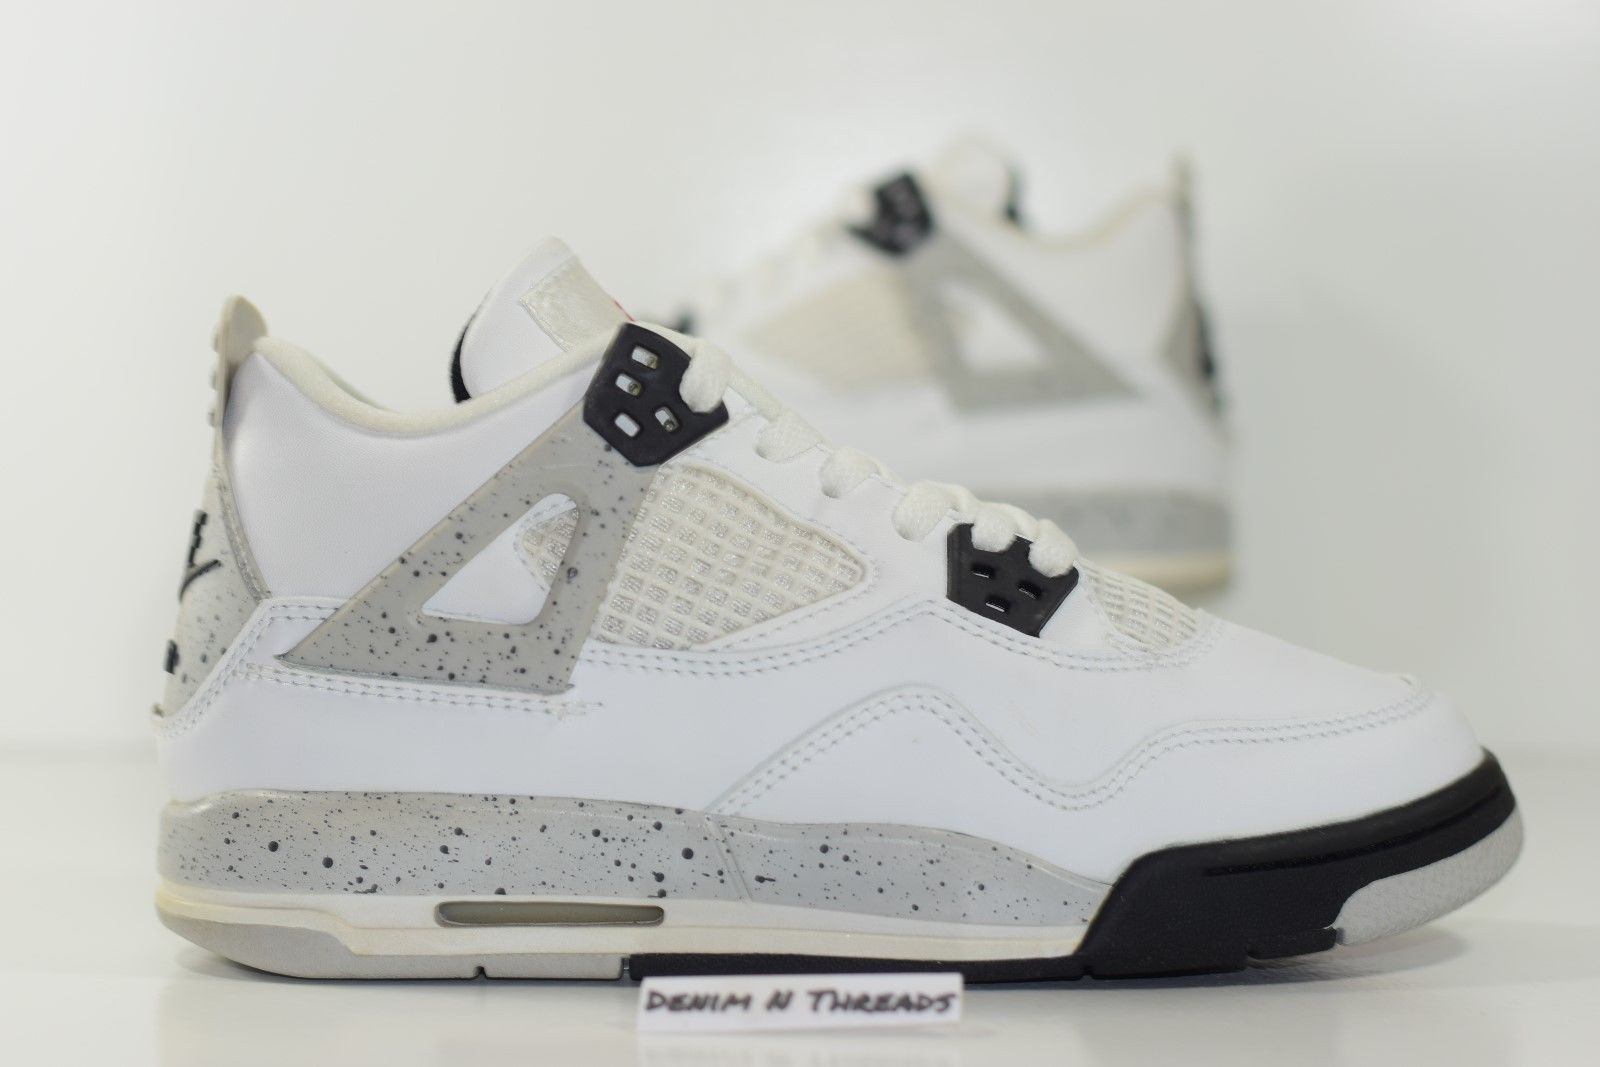 timeless design df516 8e3b1 Size 5 | 1999 NIke Air Jordan IV Retro 4 White Cement OG from BucksVintage